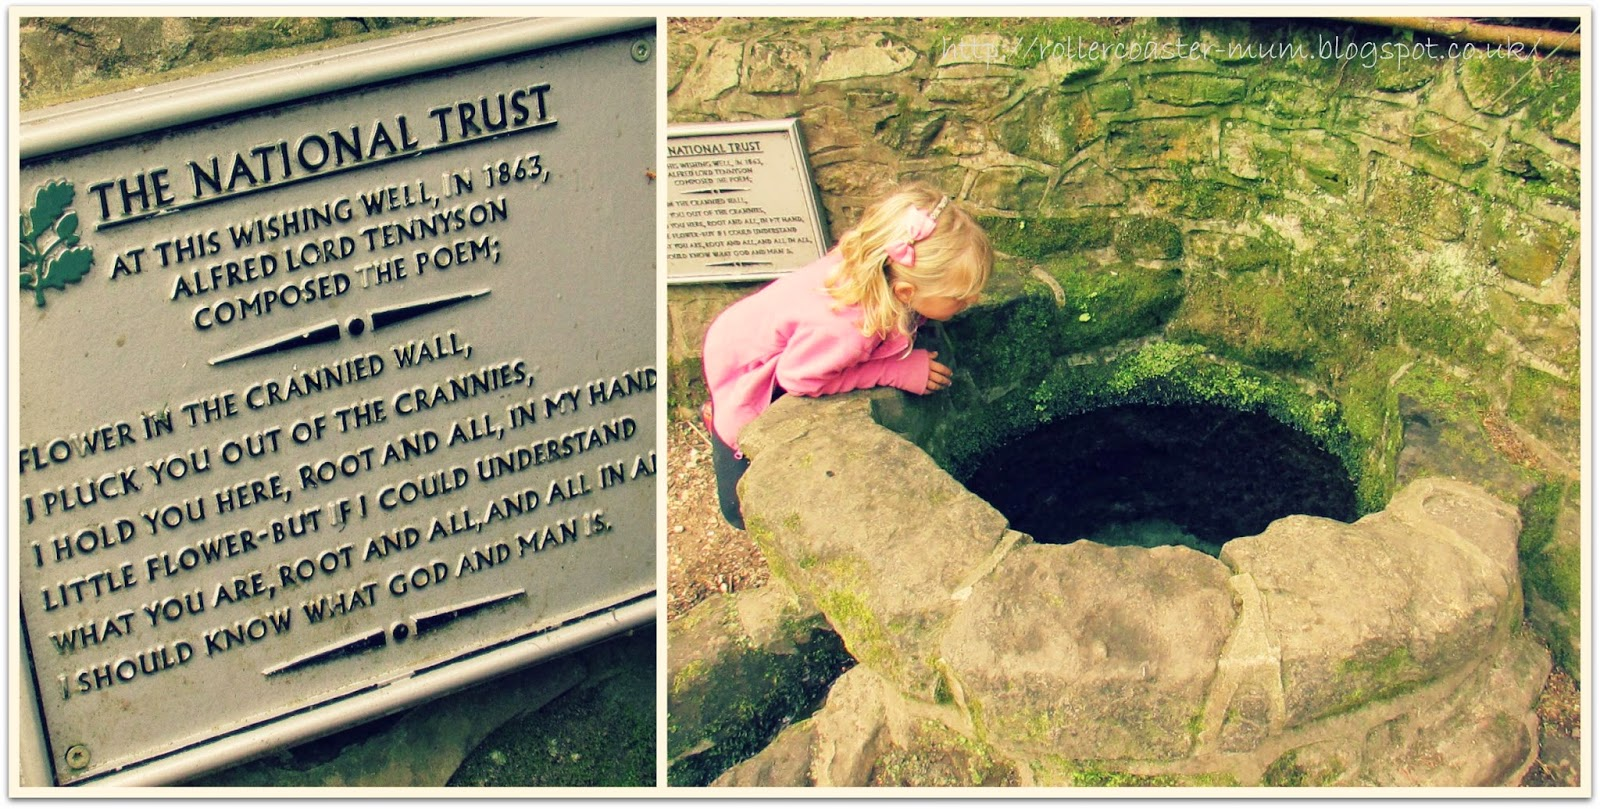 Tennyson's poem by the Wishing Well at National Trust Waggoners Wells